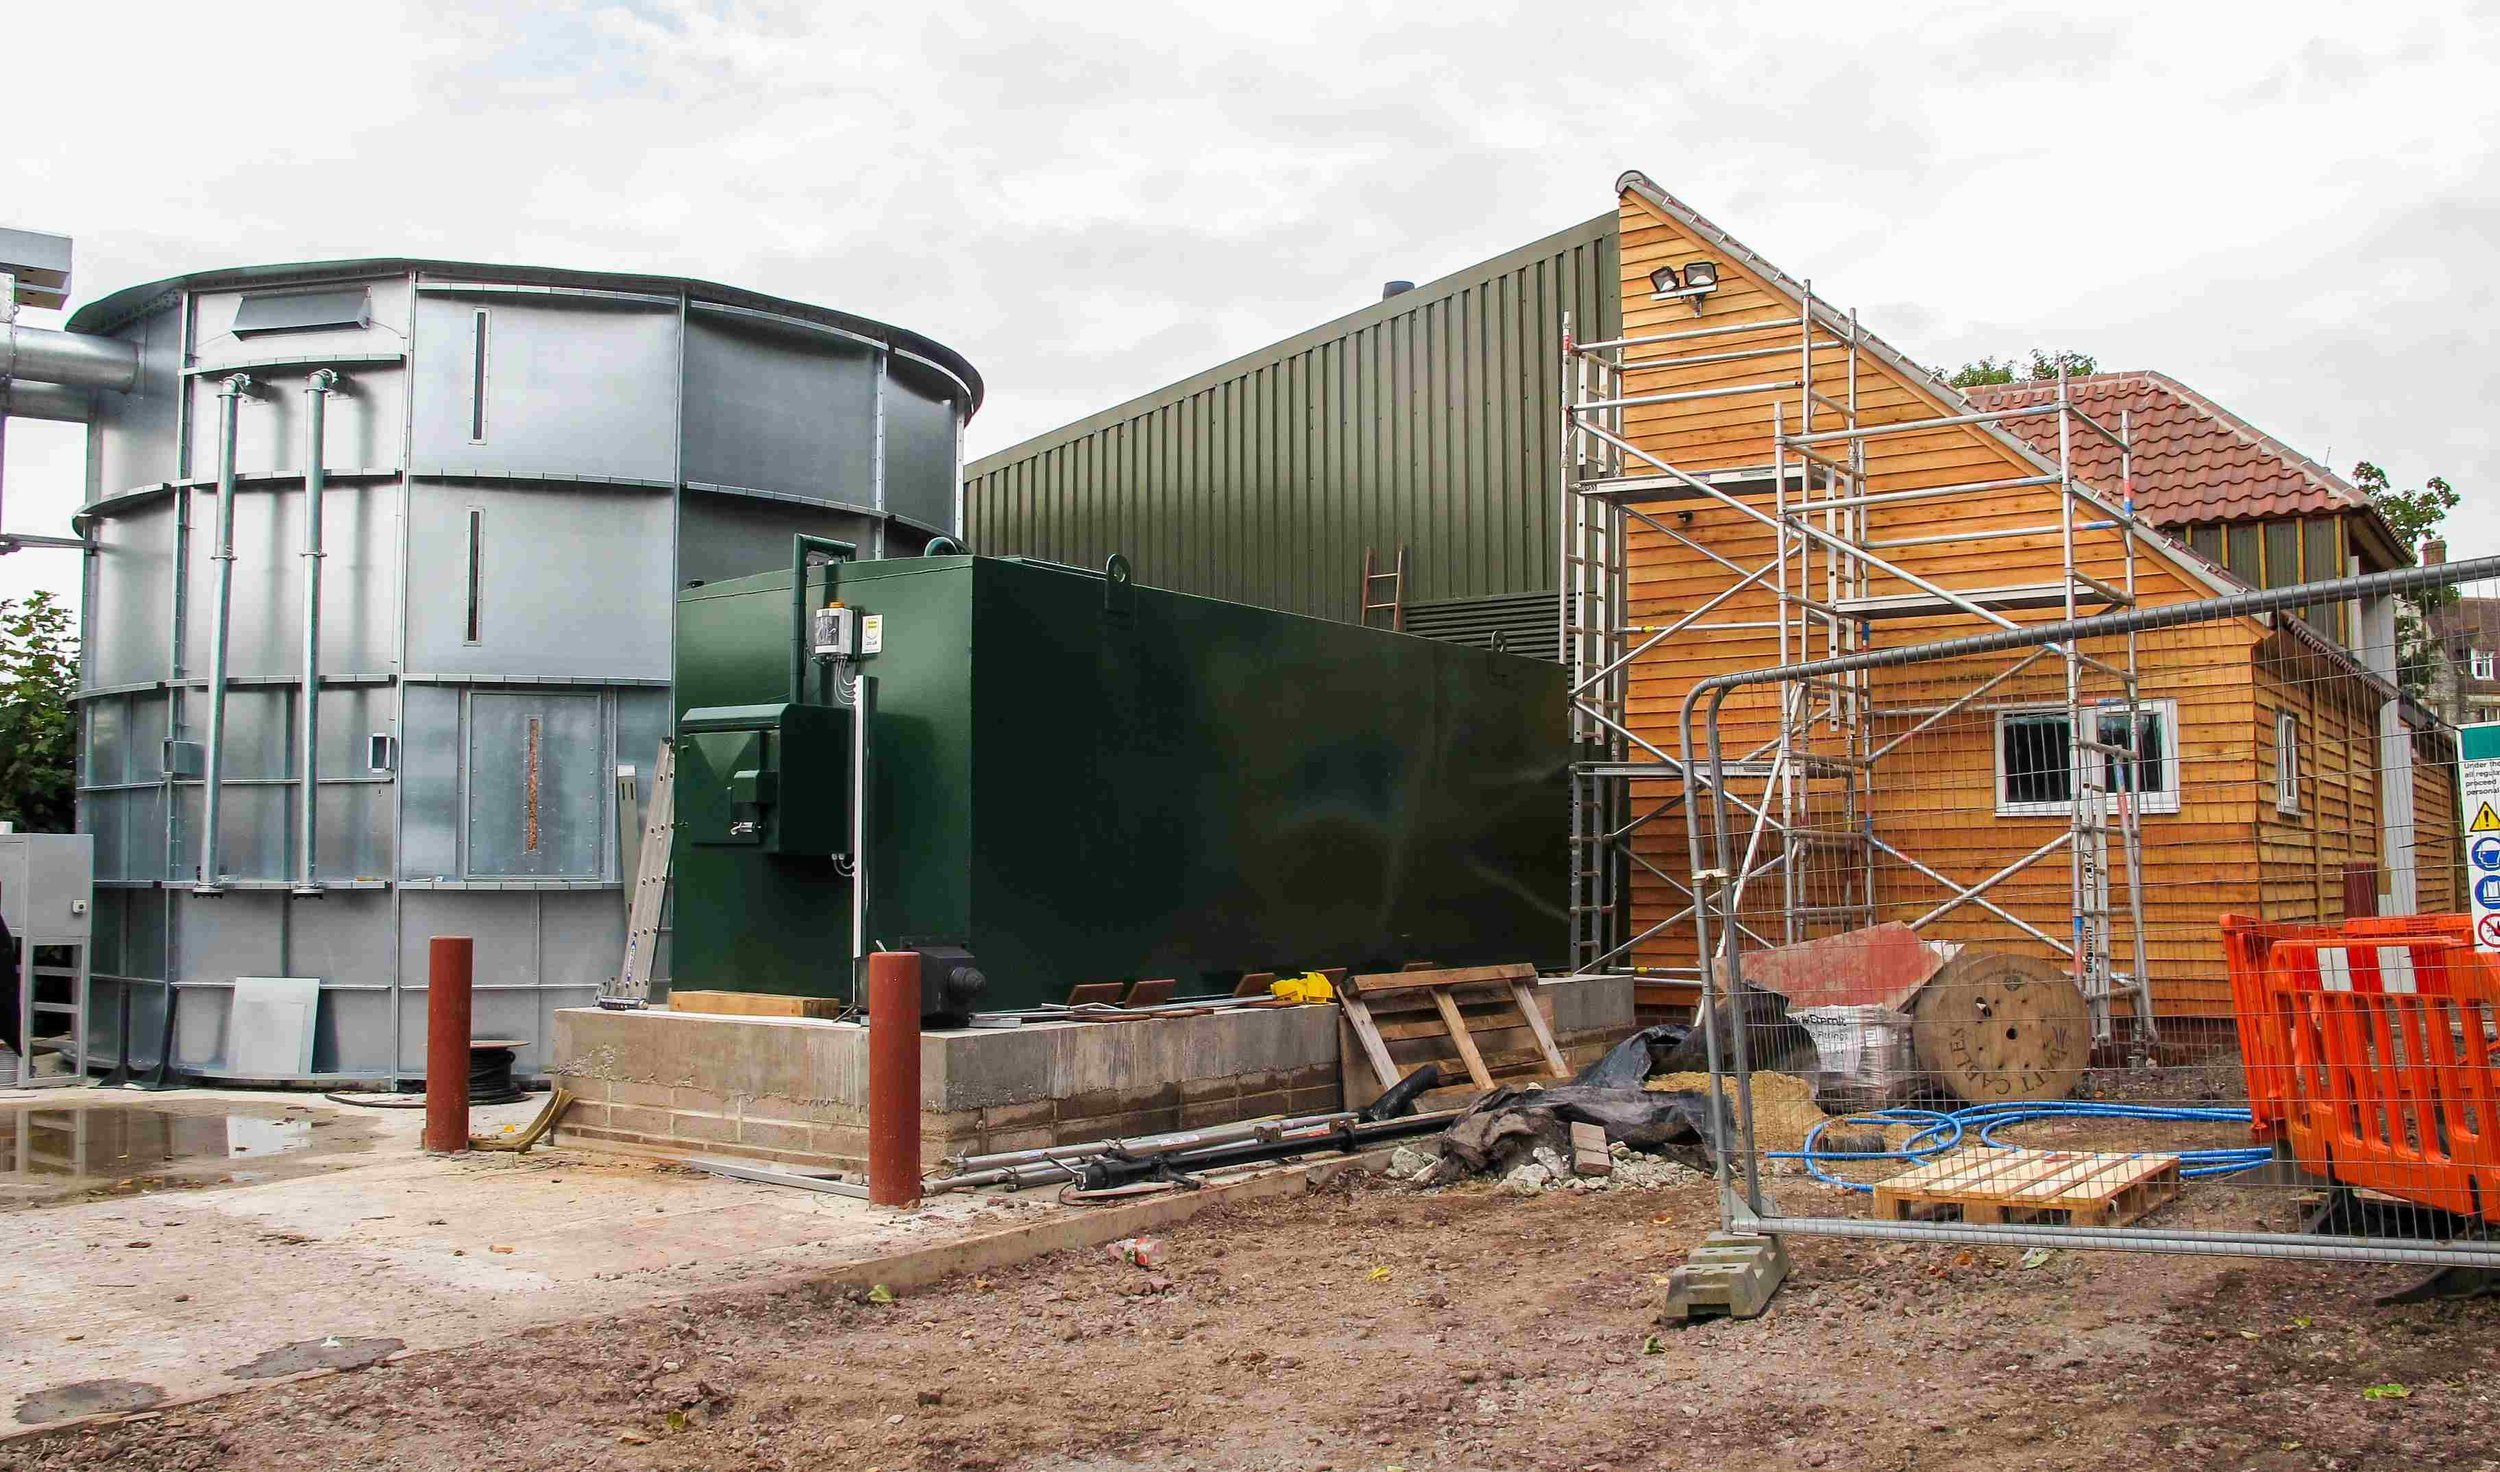 Clayesmore School Biomass Energy Centre